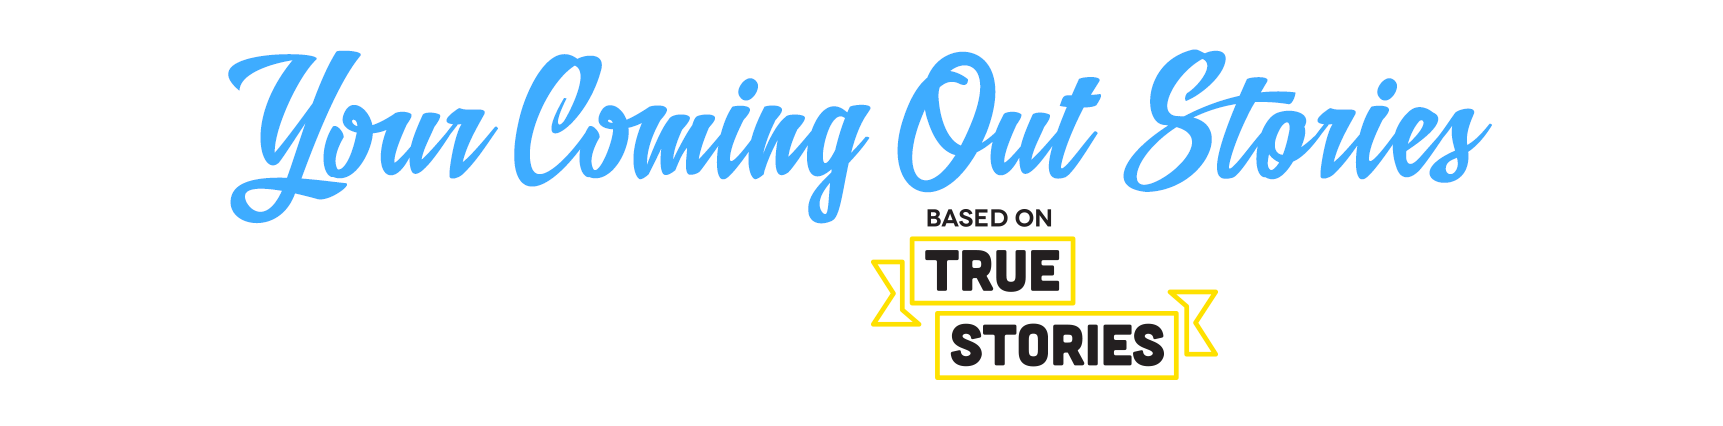 Coming Out Stories Tumblr Your Coming Out Stories